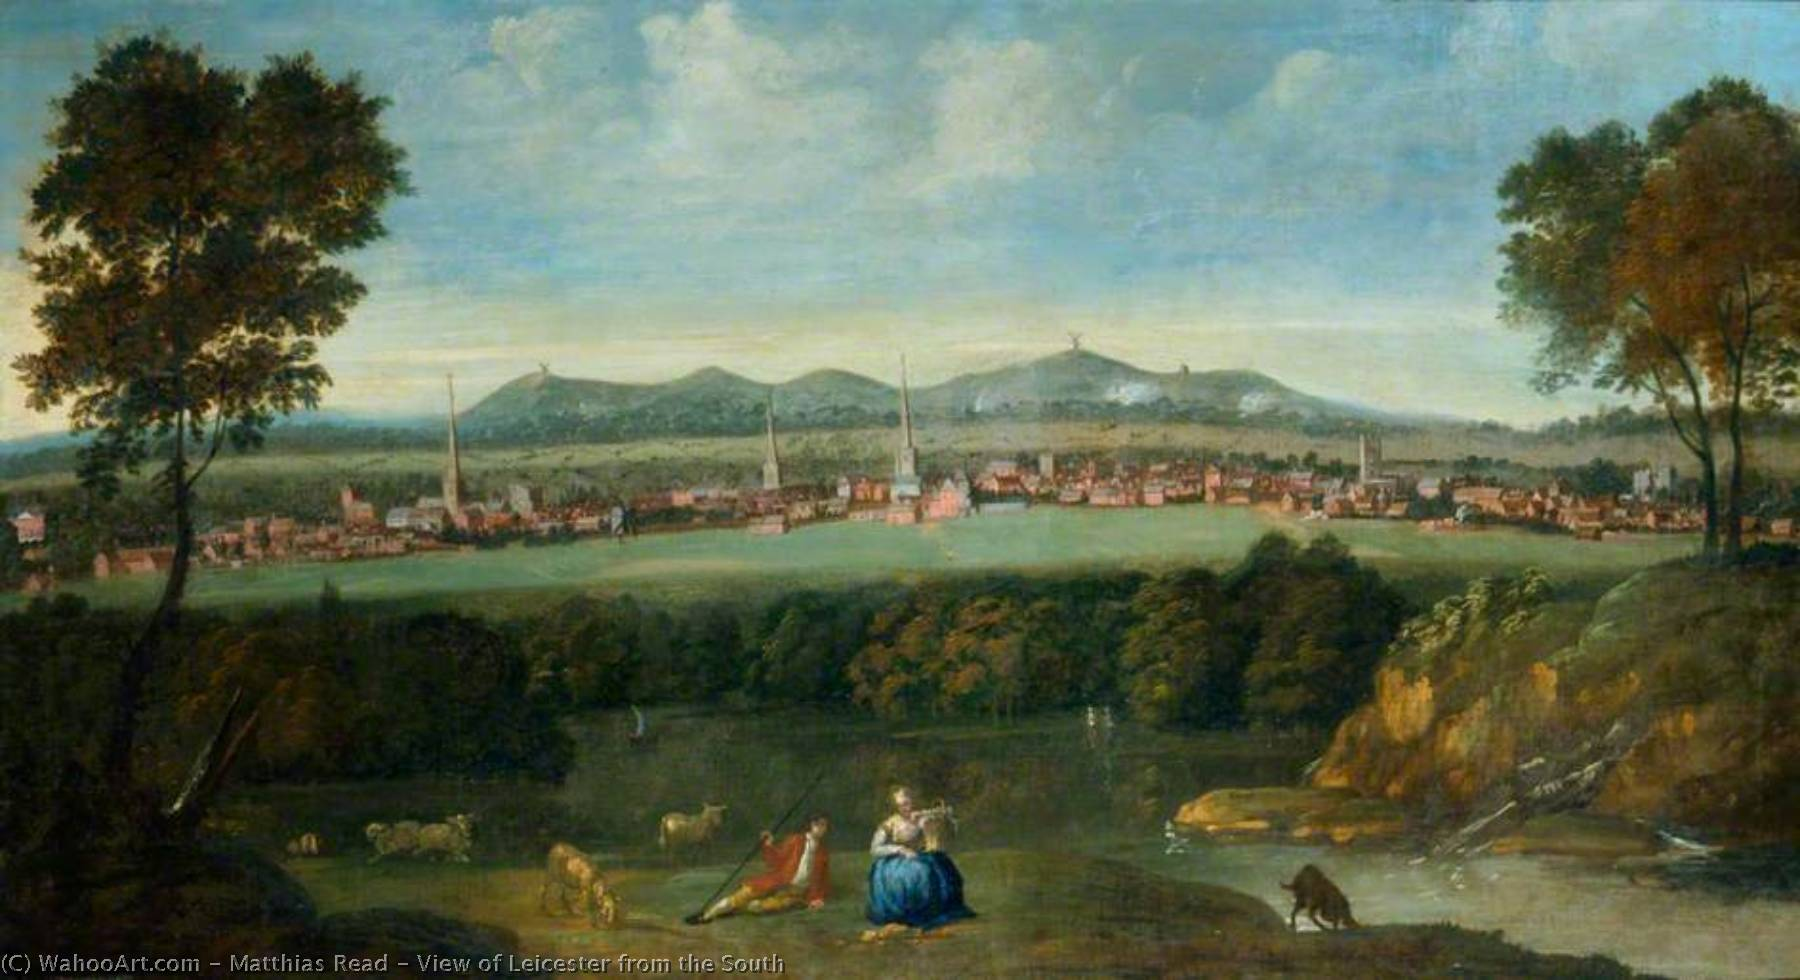 View of Leicester from the South by Matthias Read | Famous Paintings Reproductions | WahooArt.com